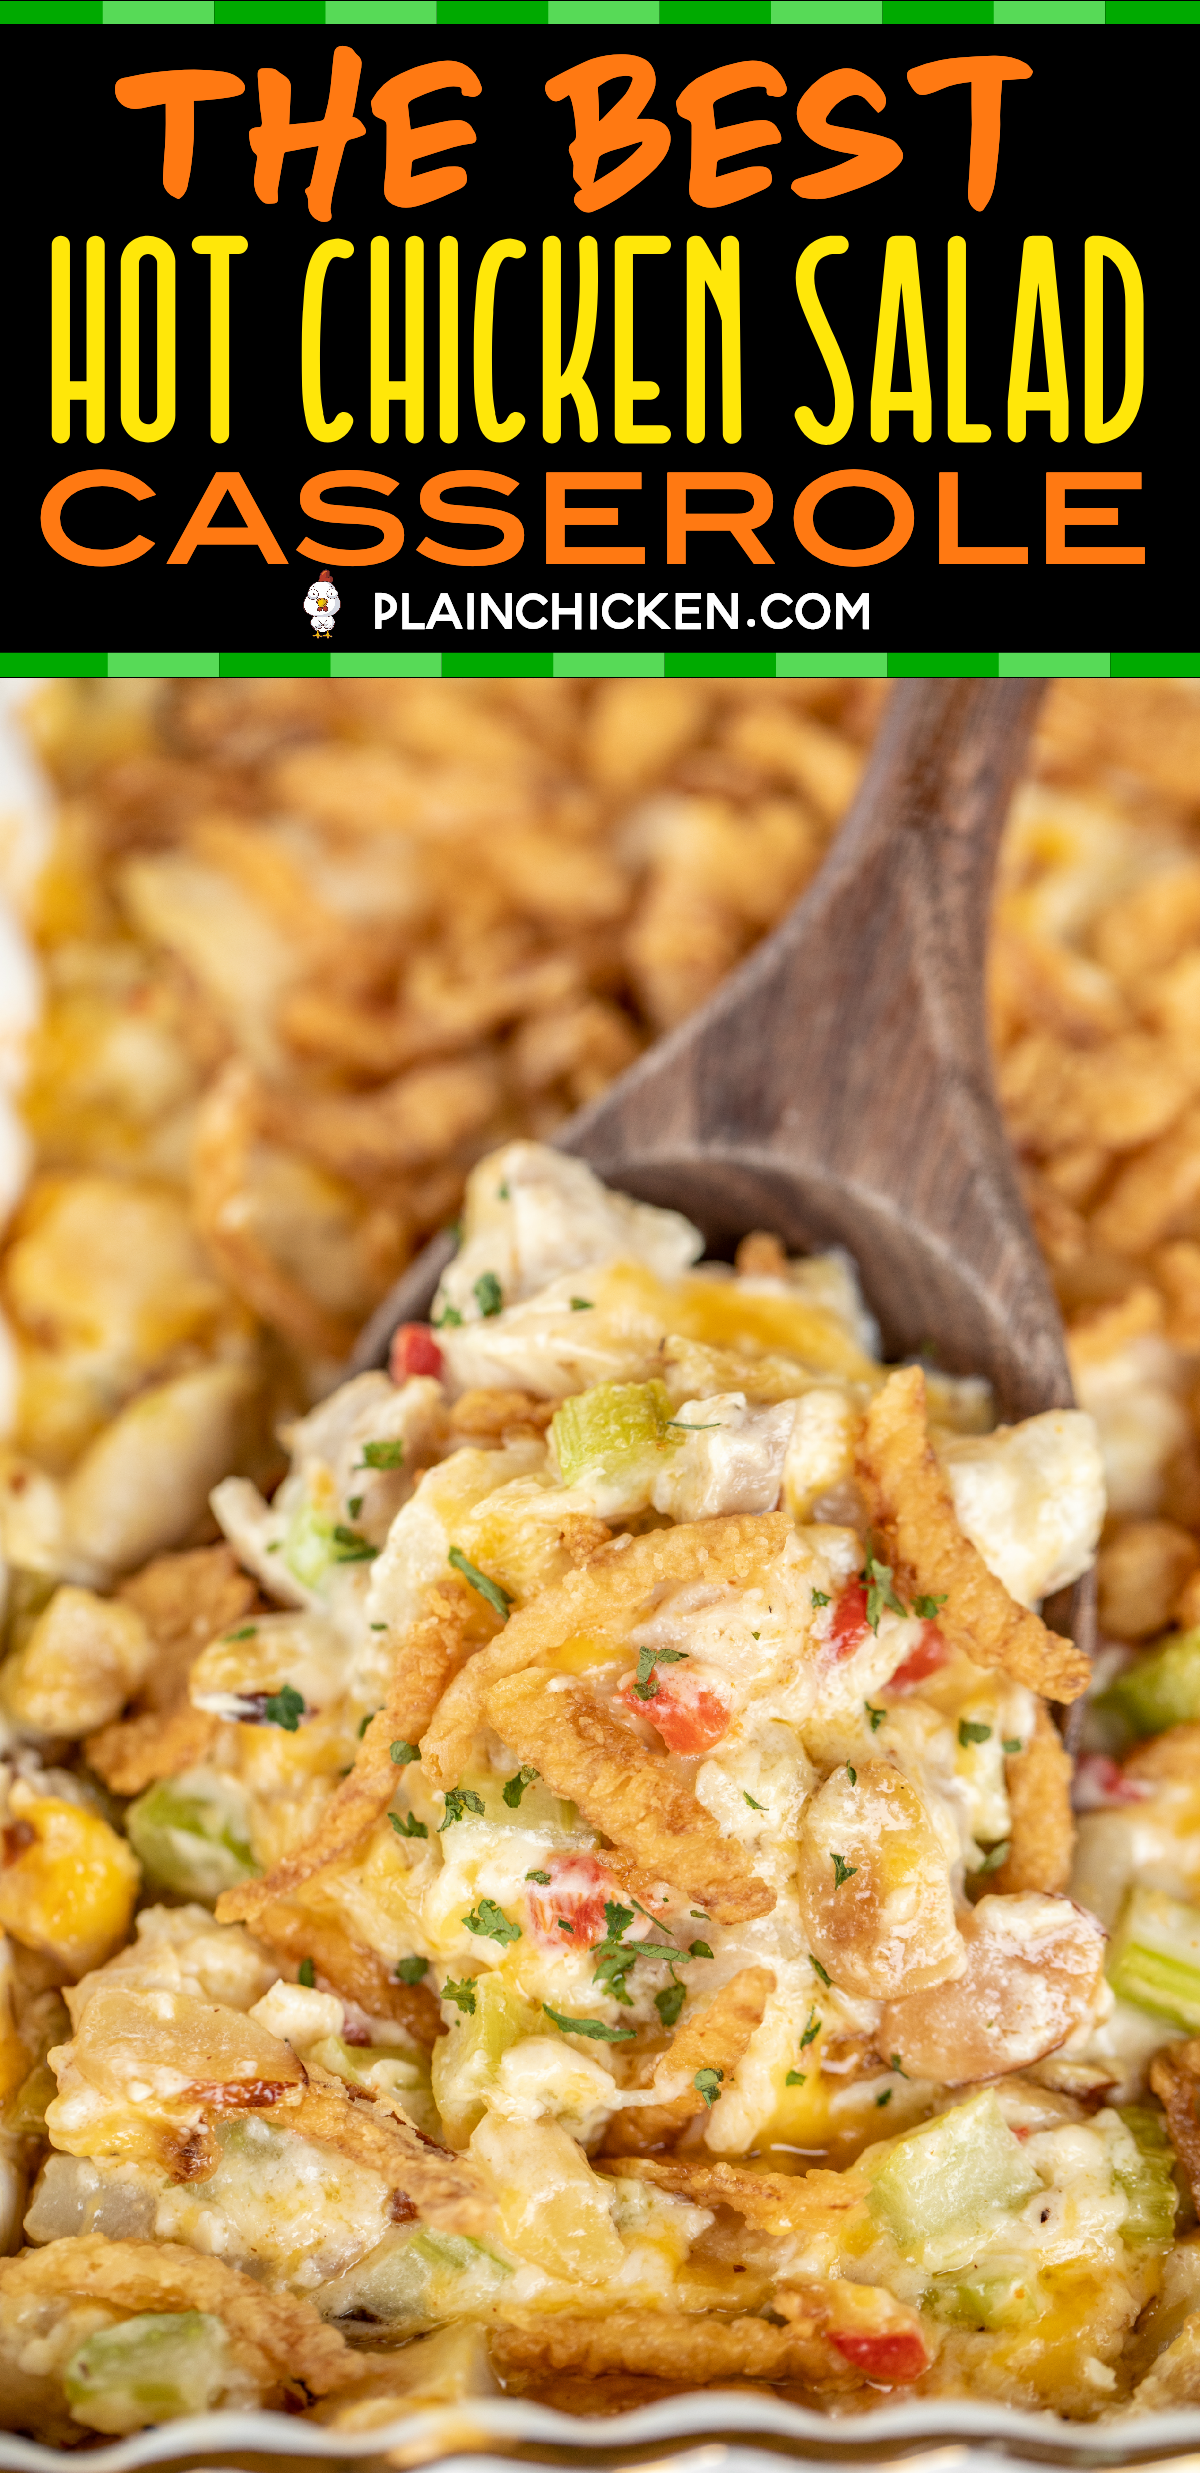 The BEST Hot Chicken Salad - seriously delicious chicken casserole!! Baked chicken salad loaded with pimentos, water chestnuts, almonds, cheese and french fried onions. Great for lunch, brunch, dinner, baby showers, potlucks and tailgating. Chicken, almonds, water chestnuts, pimentos, celery, lemon juice, mayonnaise, cheddar cheese, cream of chicken soup and french fried onions. Can make in advance and refrigerate or freeze for later. #casserole #chicken #chickencasserole #freezermeal #howtofryonions